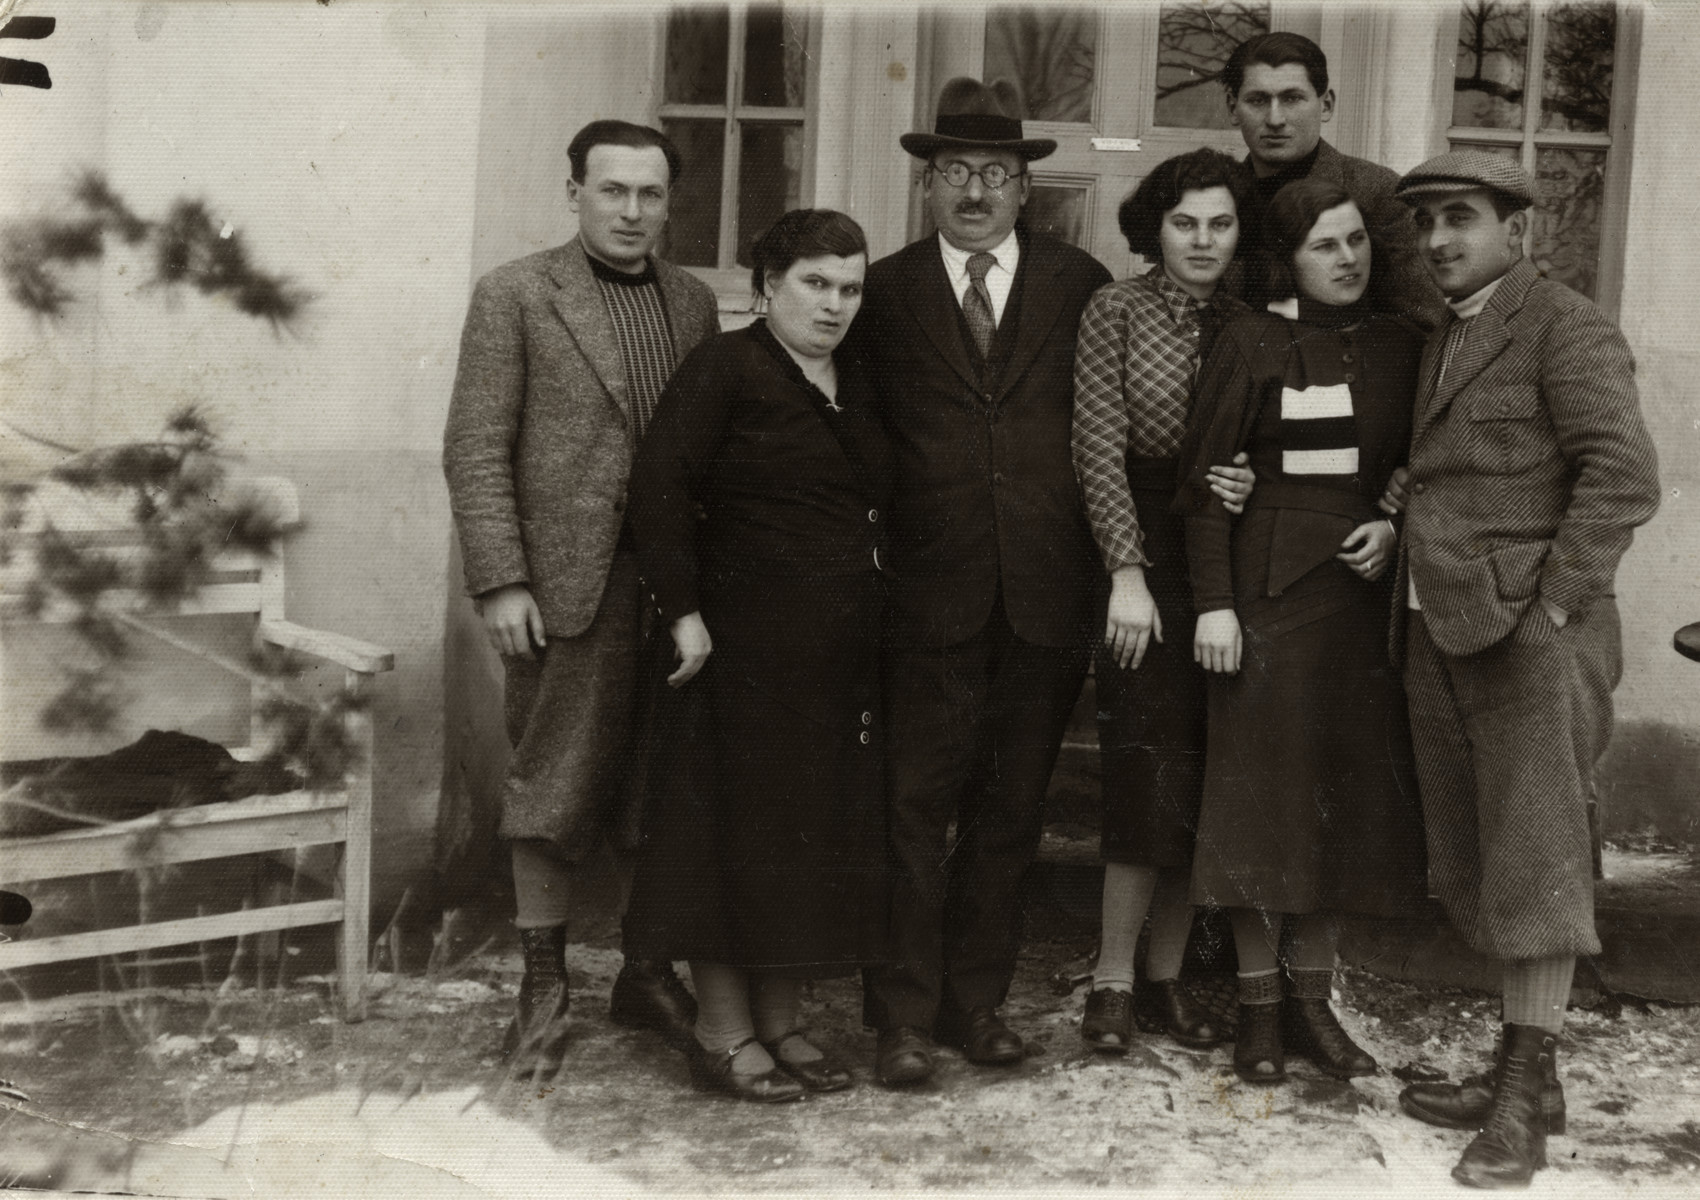 The  Weisz family poses outside its home in prewar Hungary.  Pictured from right to left: Lajos, Edith, Dzusi, Lili, Moshe, and Freida.